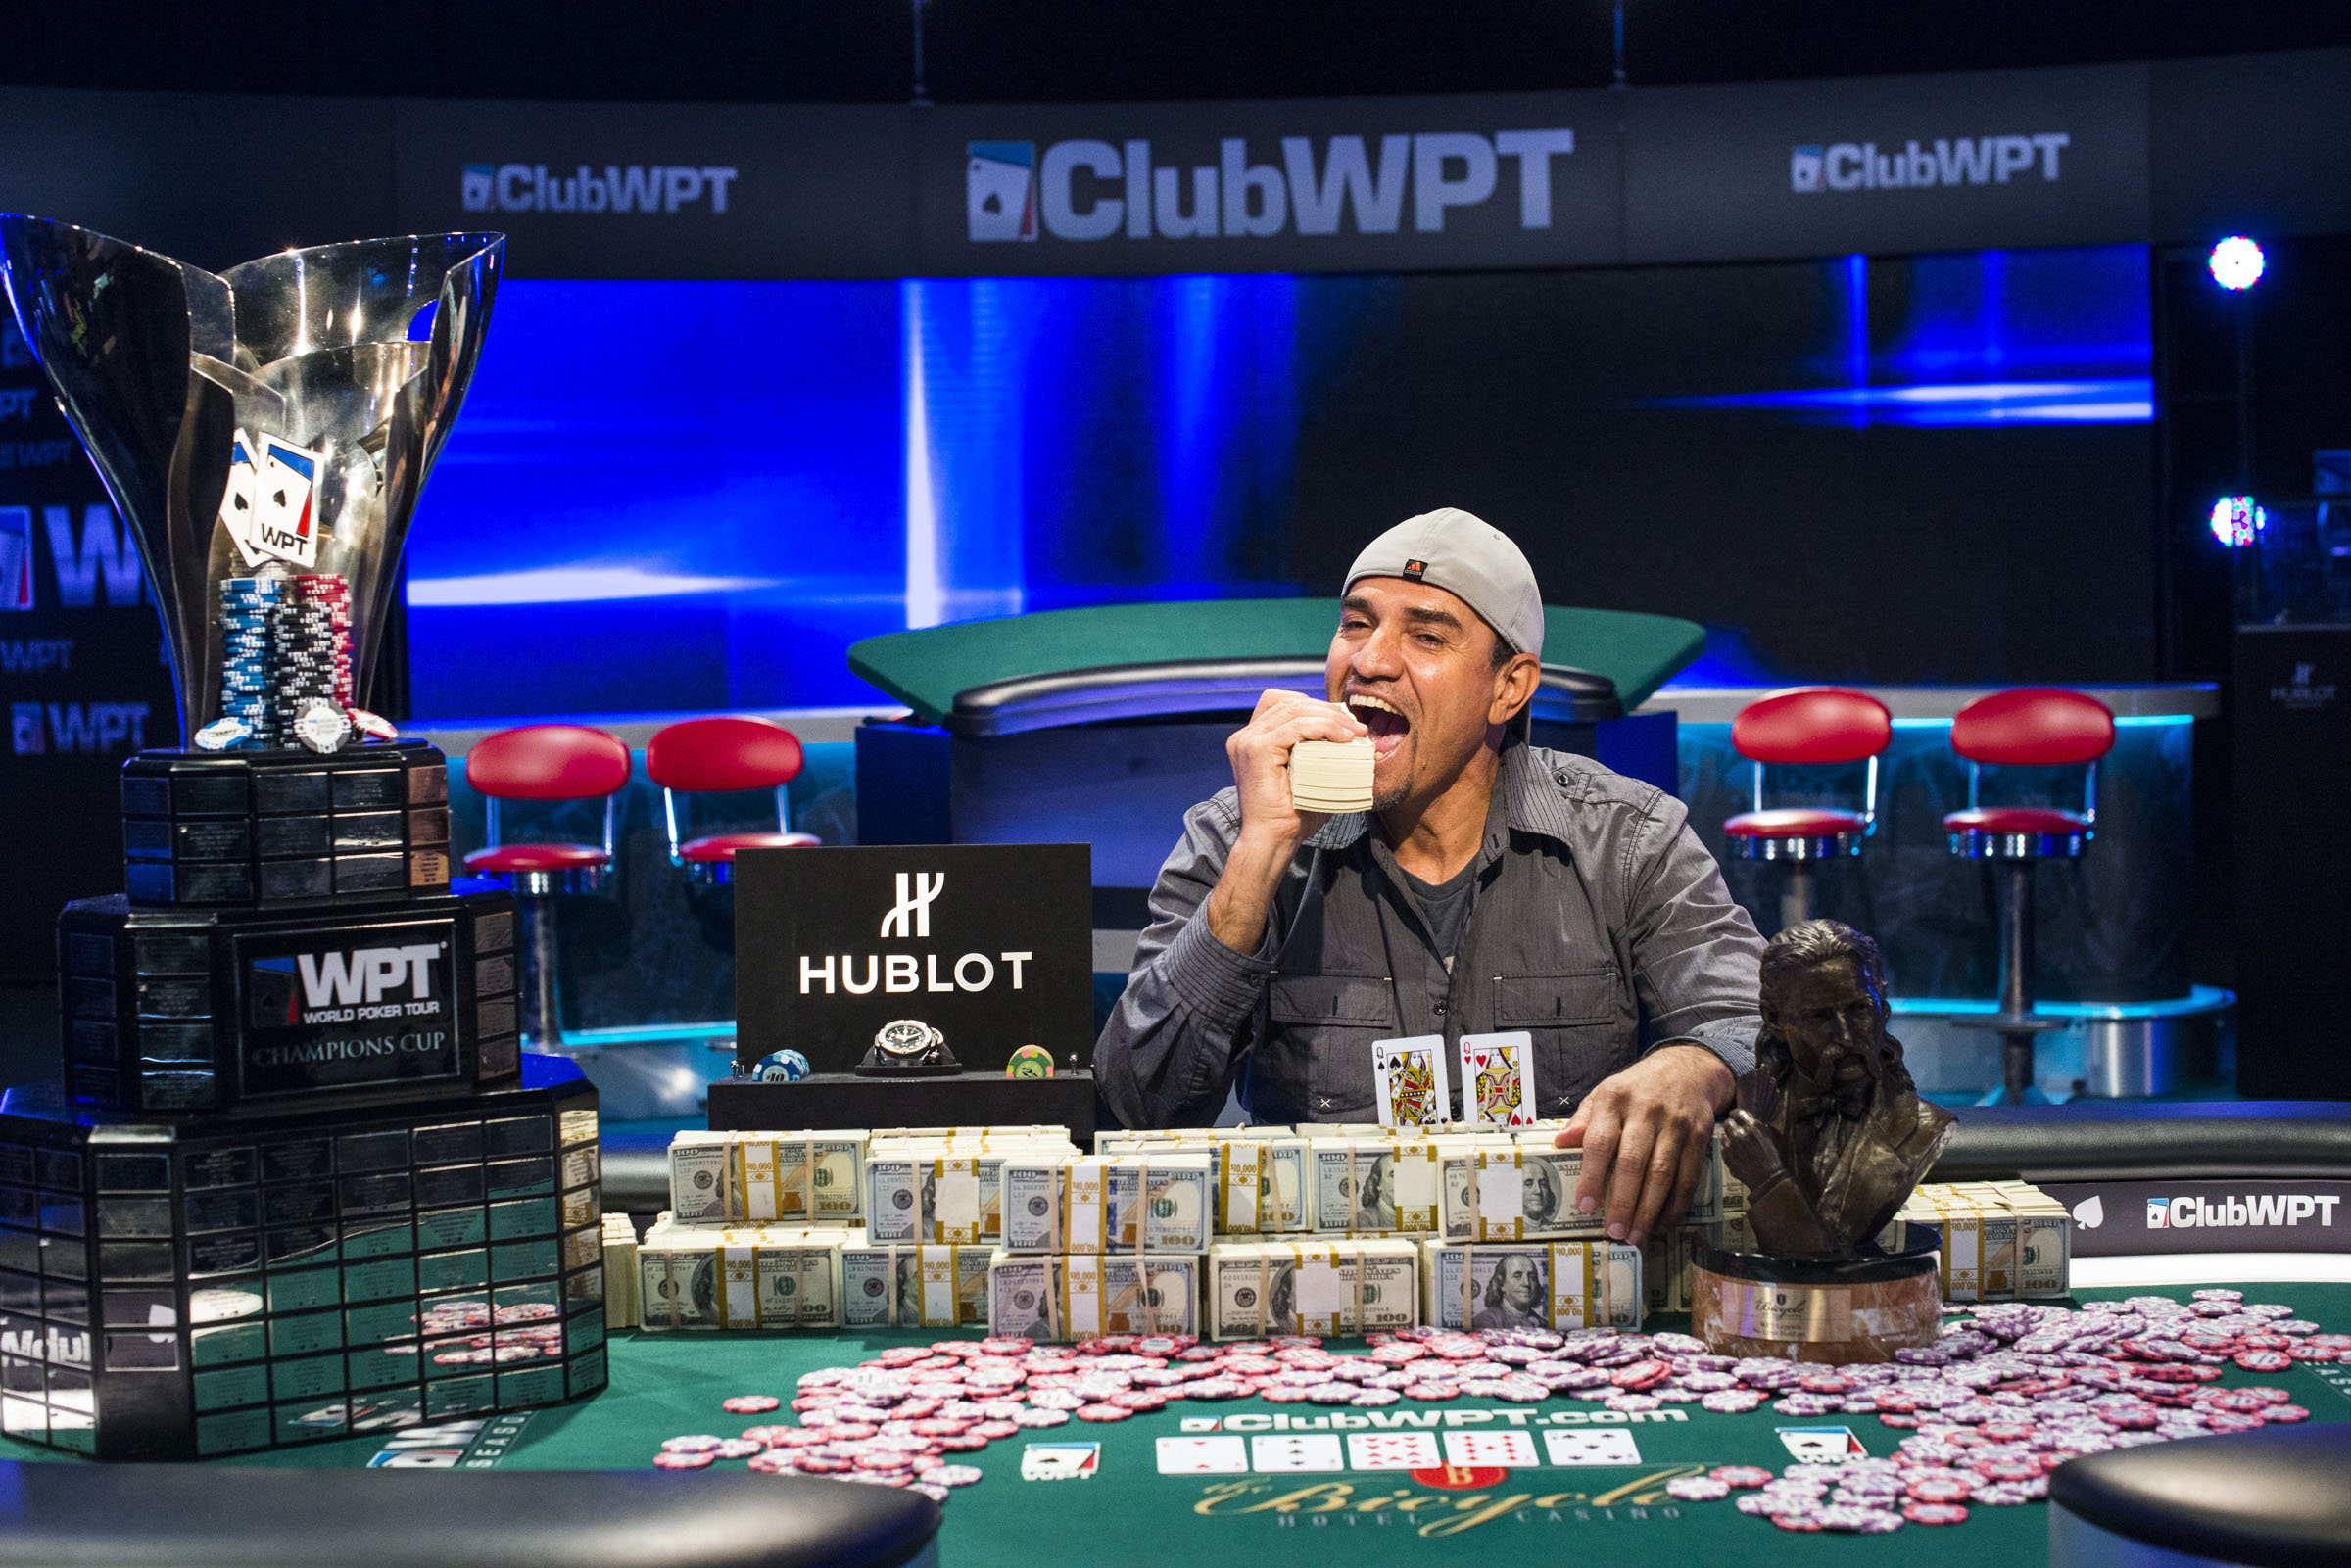 Wpt legends of poker winners best way to play poker in vegas